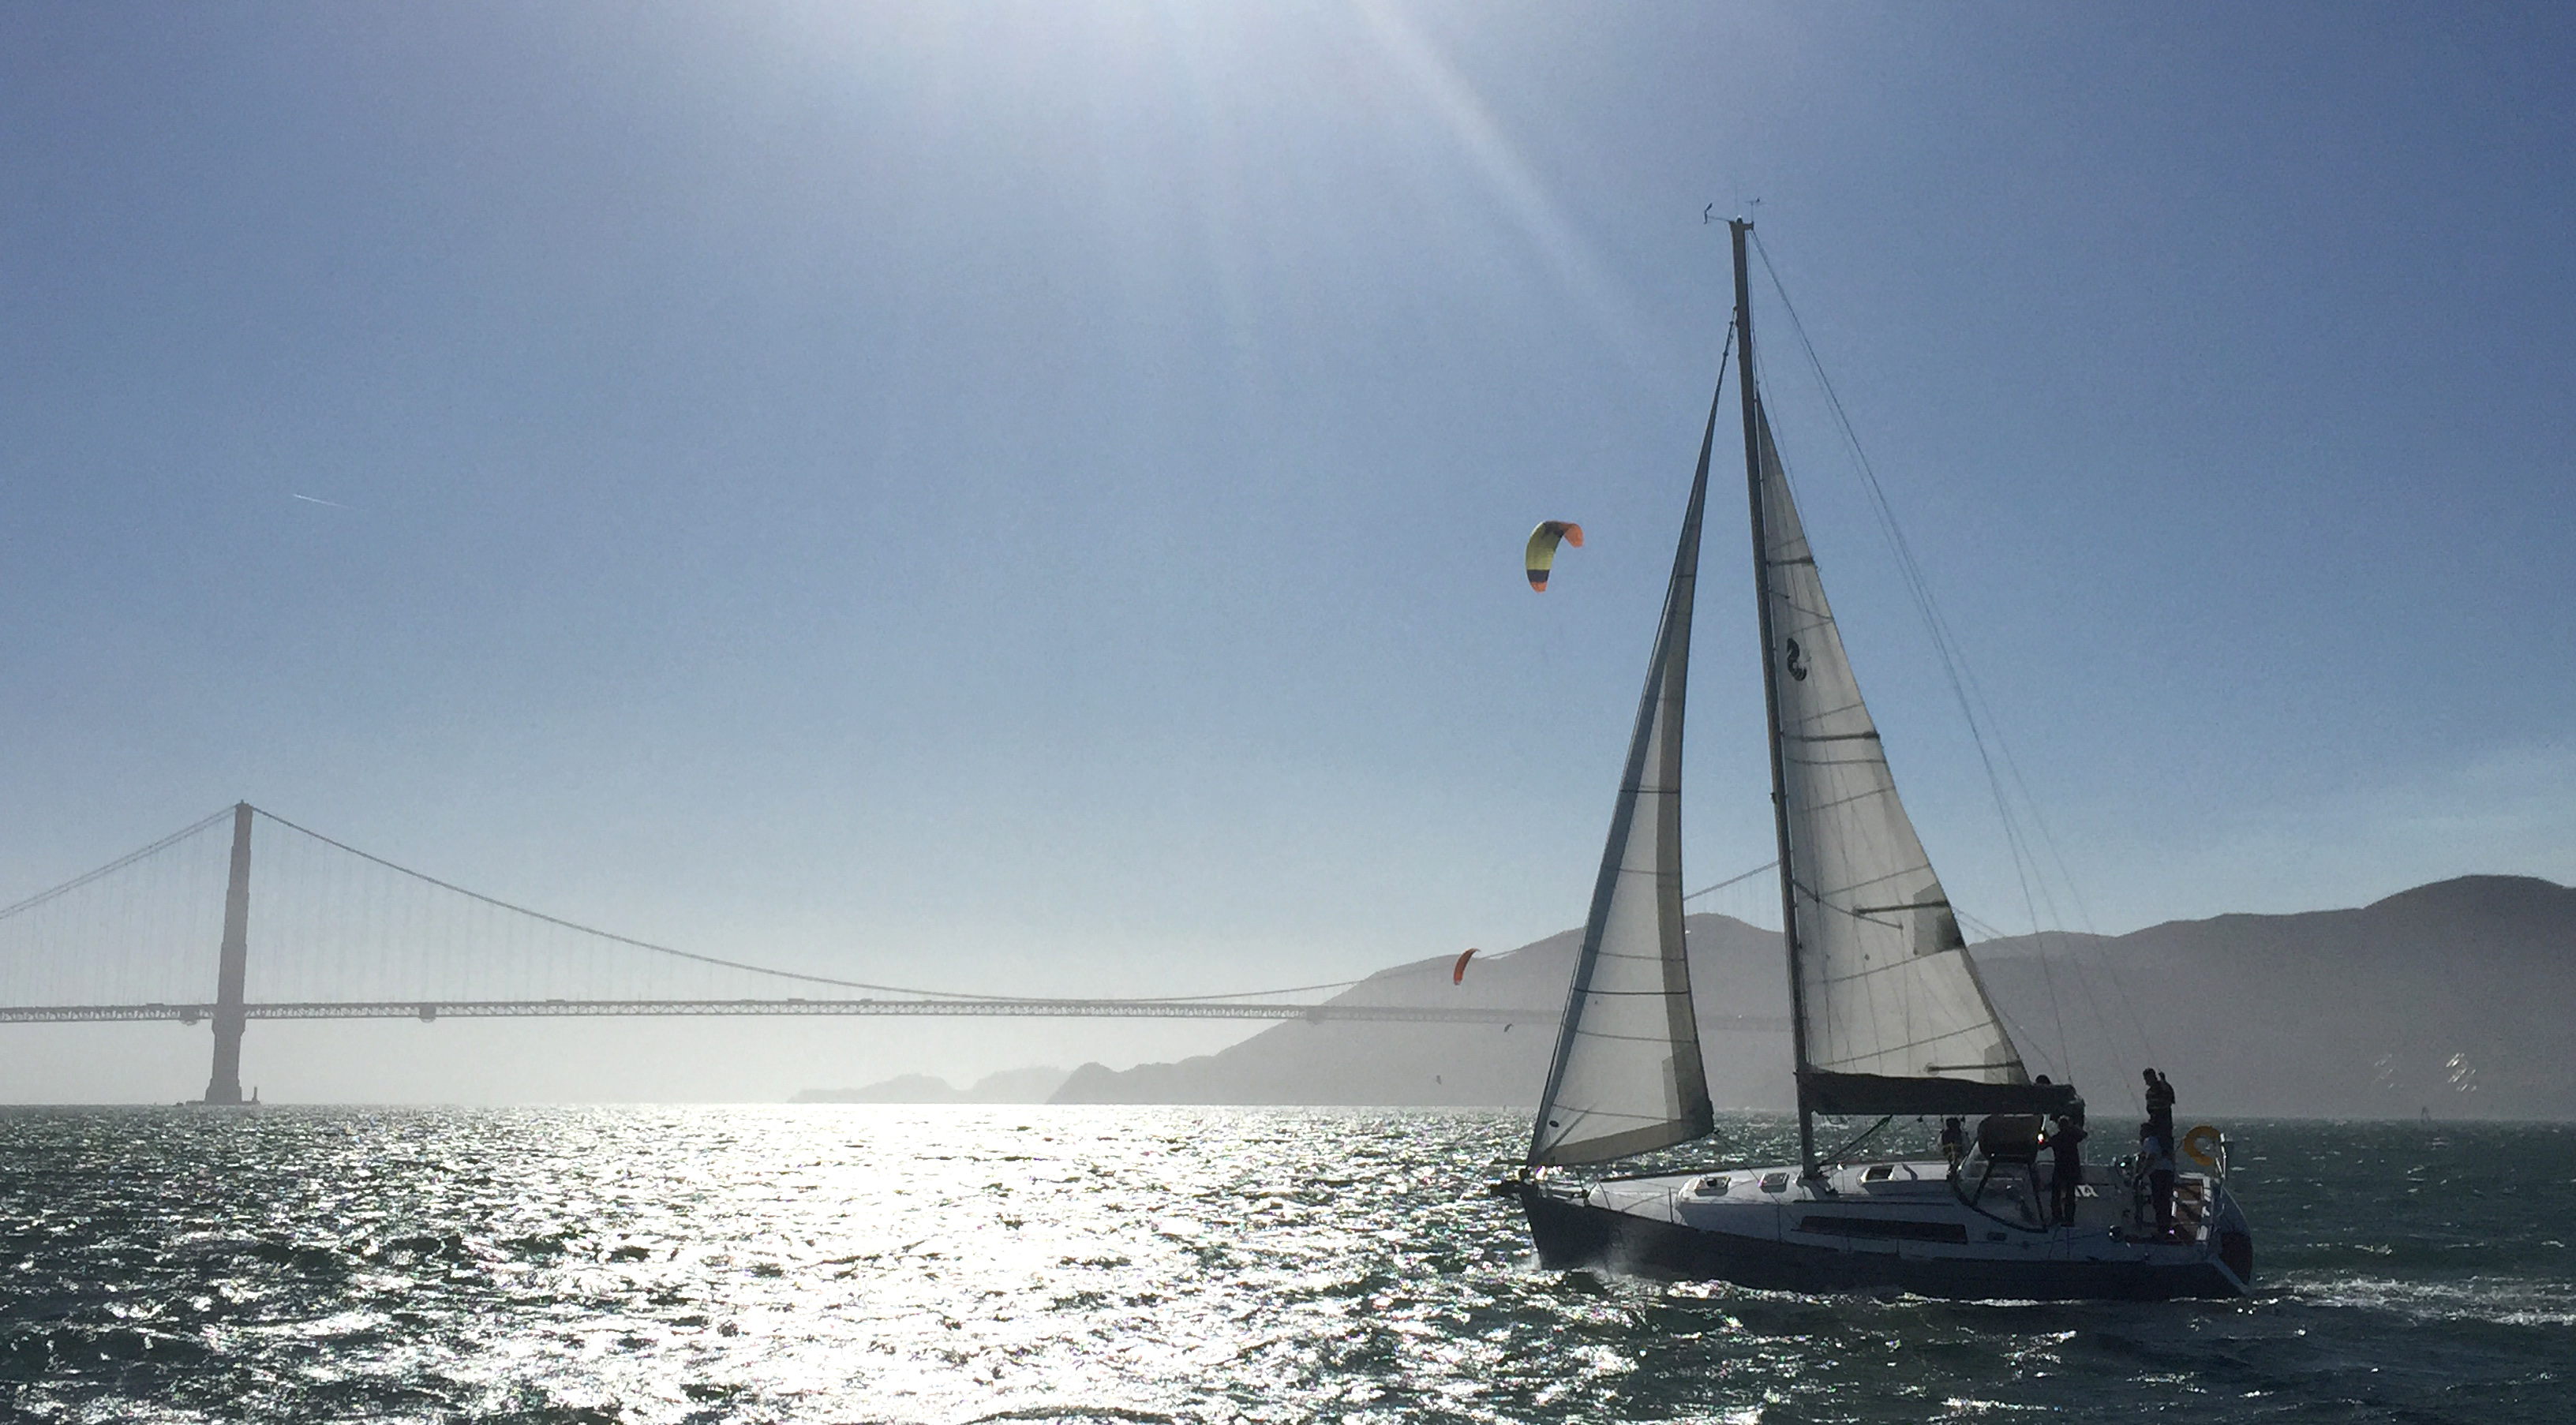 Modern Sailing's Auriah sailing with the Golden Gate Bridge and Kite Boarder in the back ground.